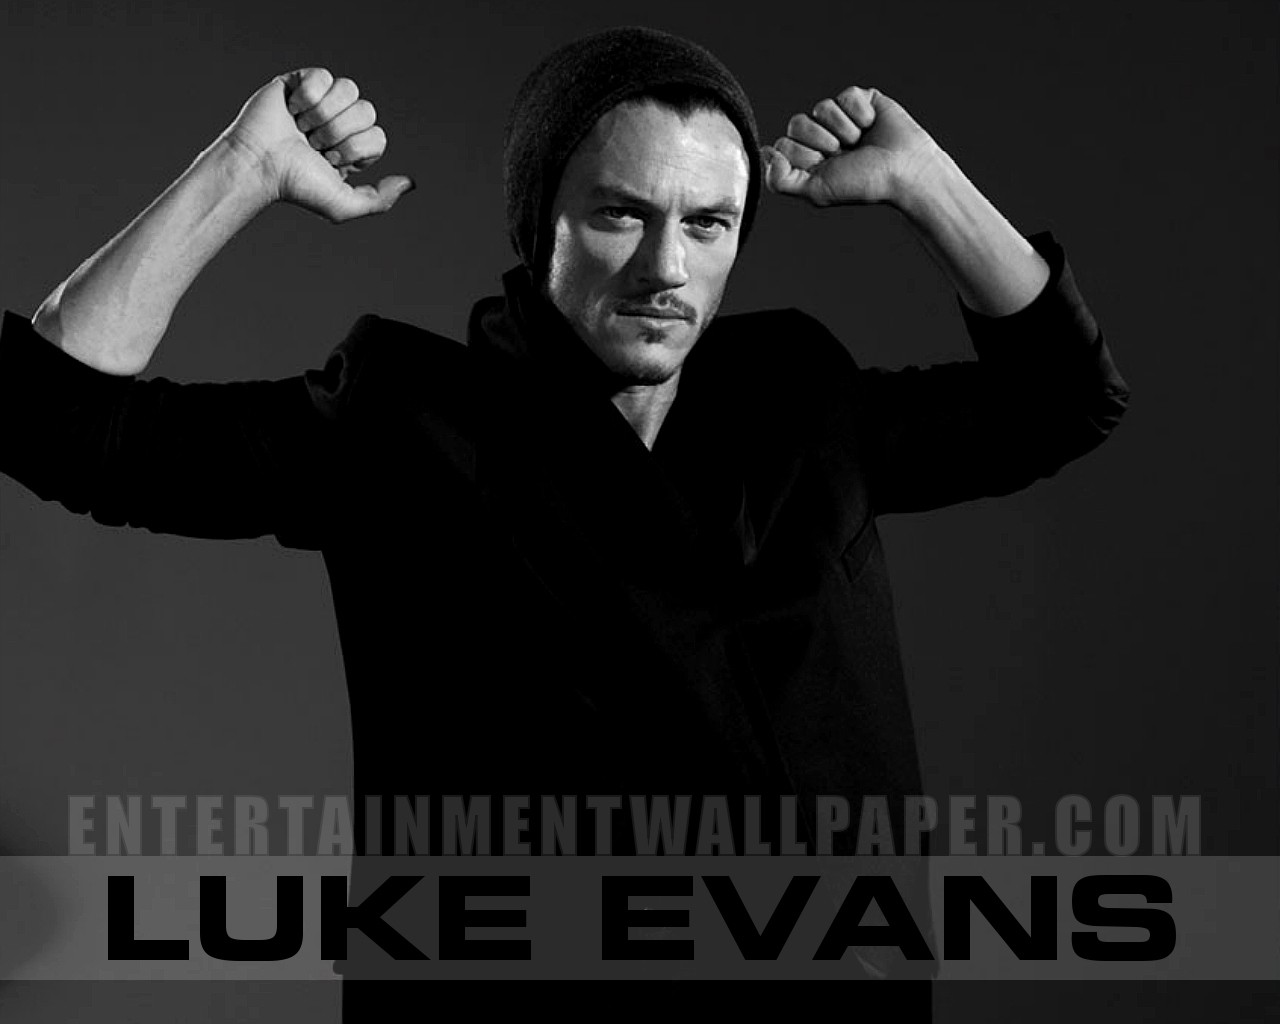 luke evans wallpaper 30028799 size 1280x1024 more luke evans wallpaper 1280x1024